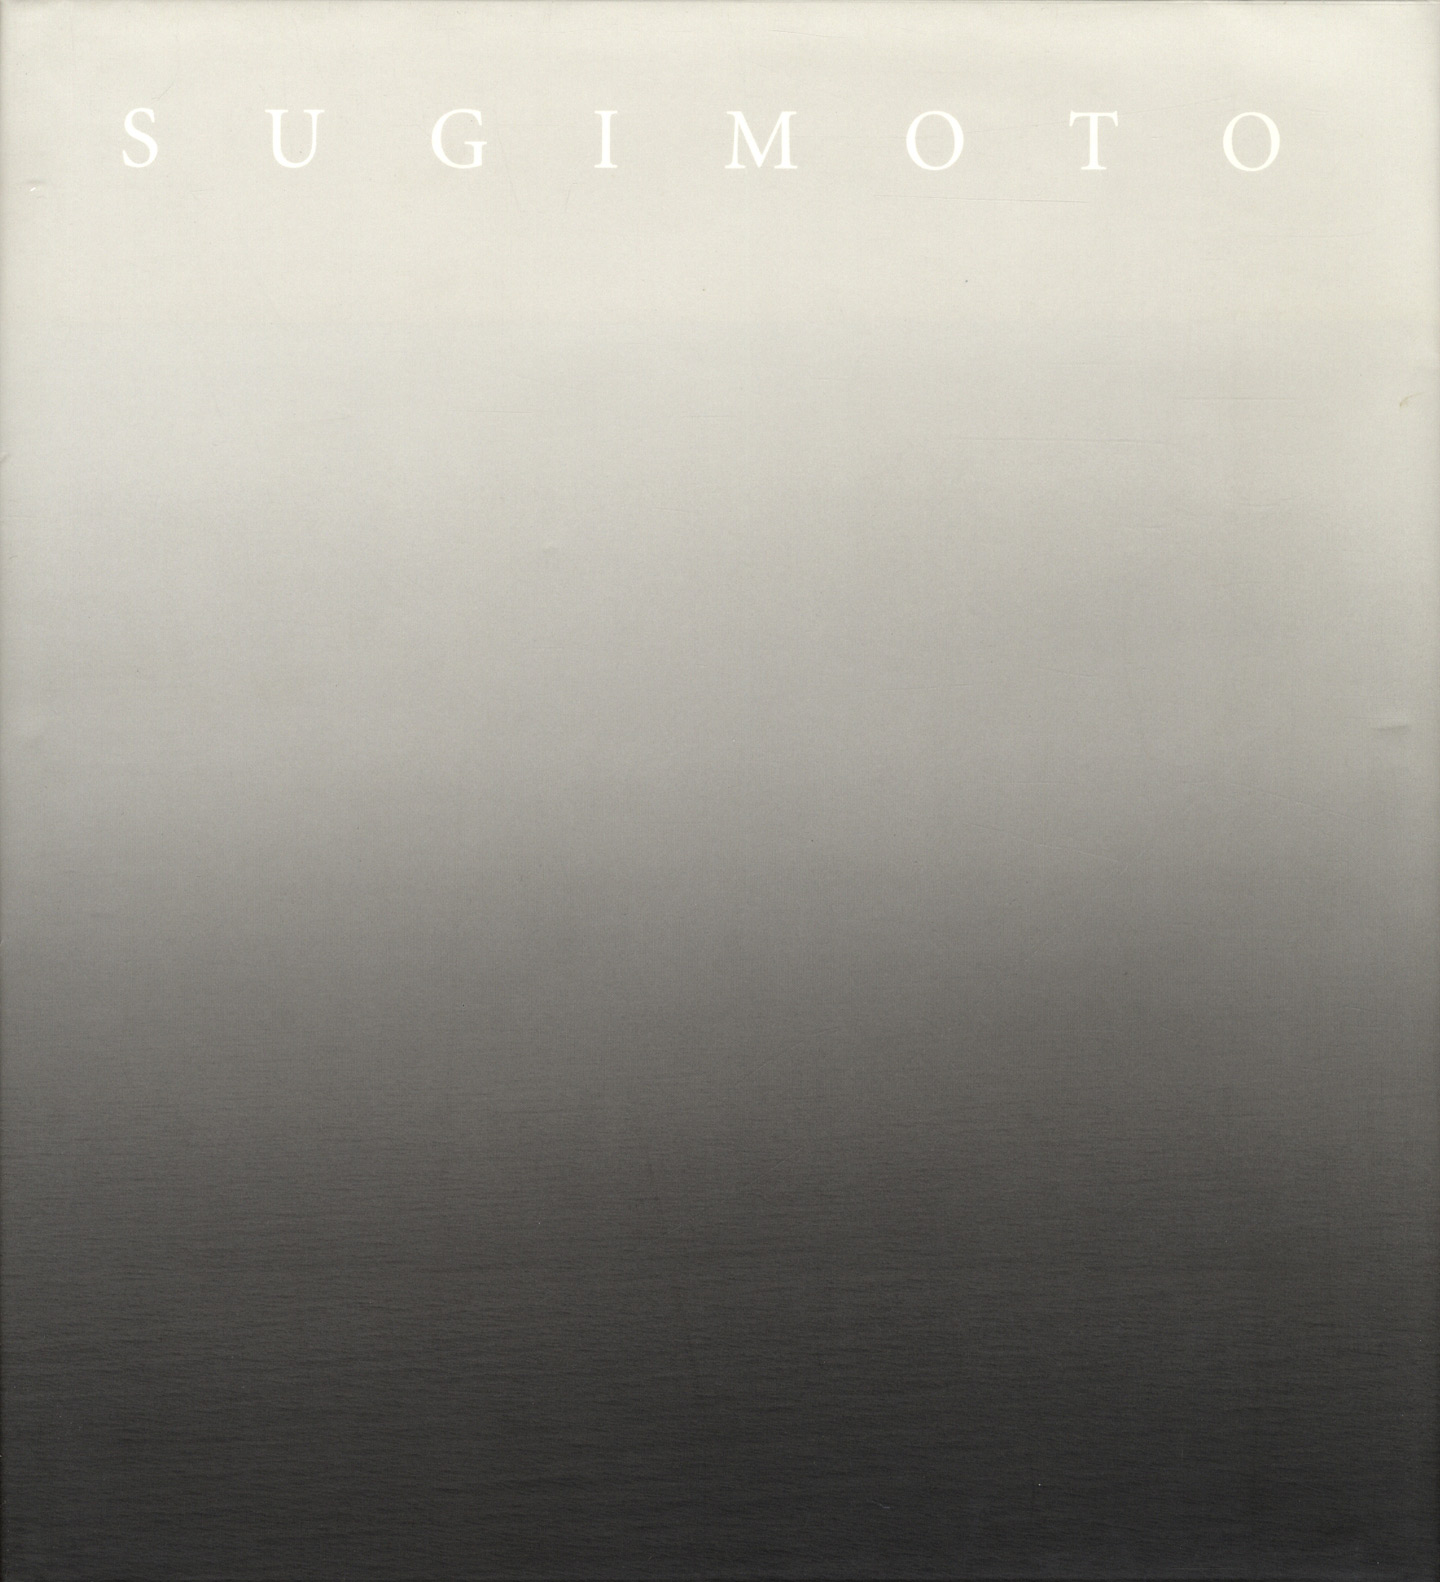 Hiroshi Sugimoto: A Near Complete Collection of 42 Books and Catalogues [Most Titles SIGNED, All First Edition, First Printing, in Fine or As New Condition; Some Titles Limited Editions; Includes Additional Ephemera]